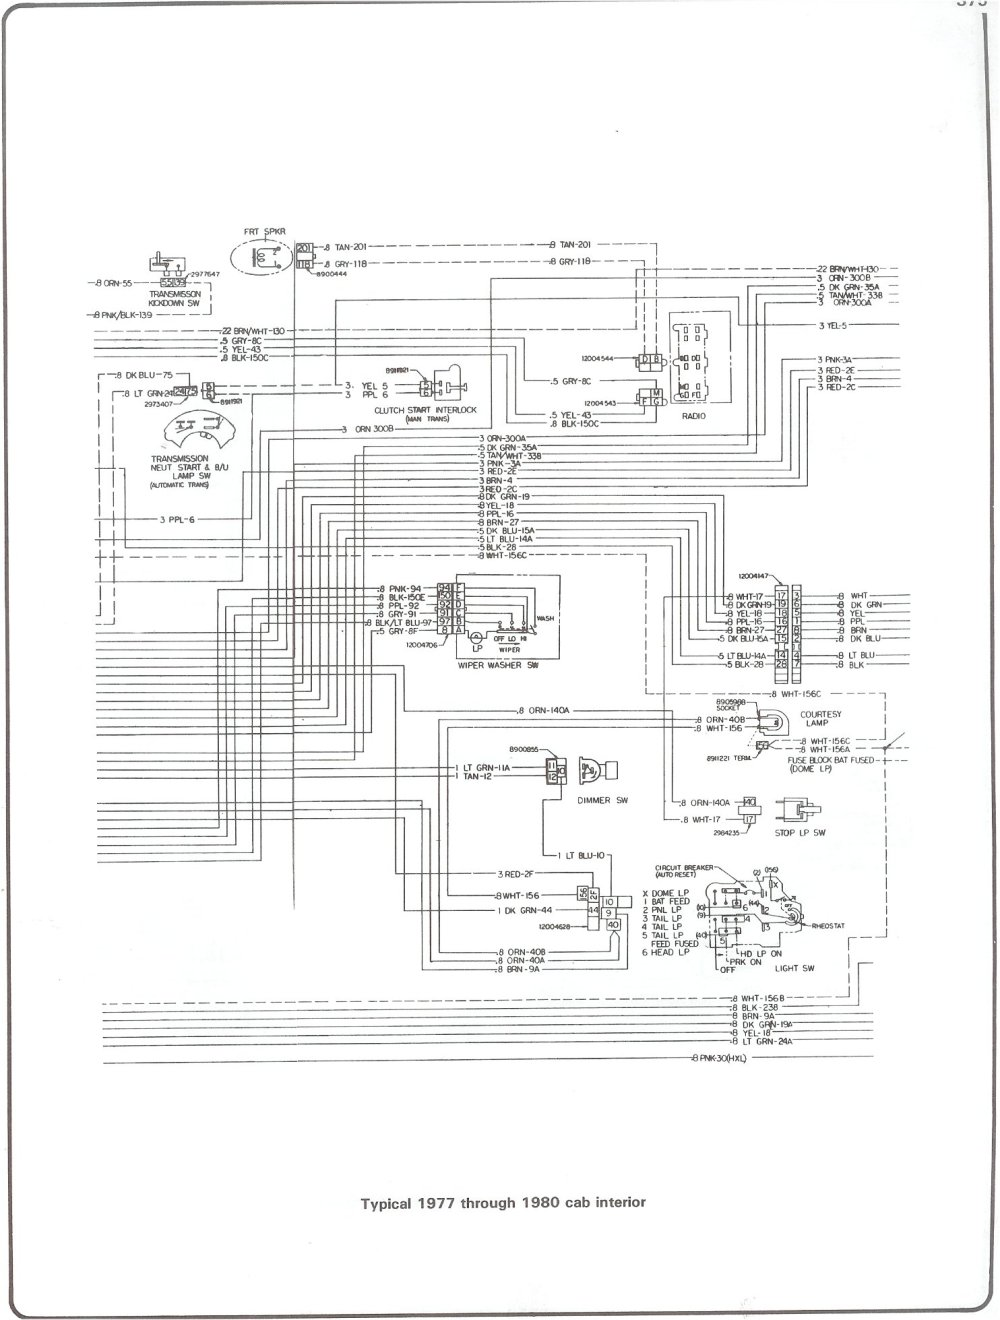 medium resolution of bmw z4 wiring diagrams auto zone simple wiring diagram rh david huggett co uk